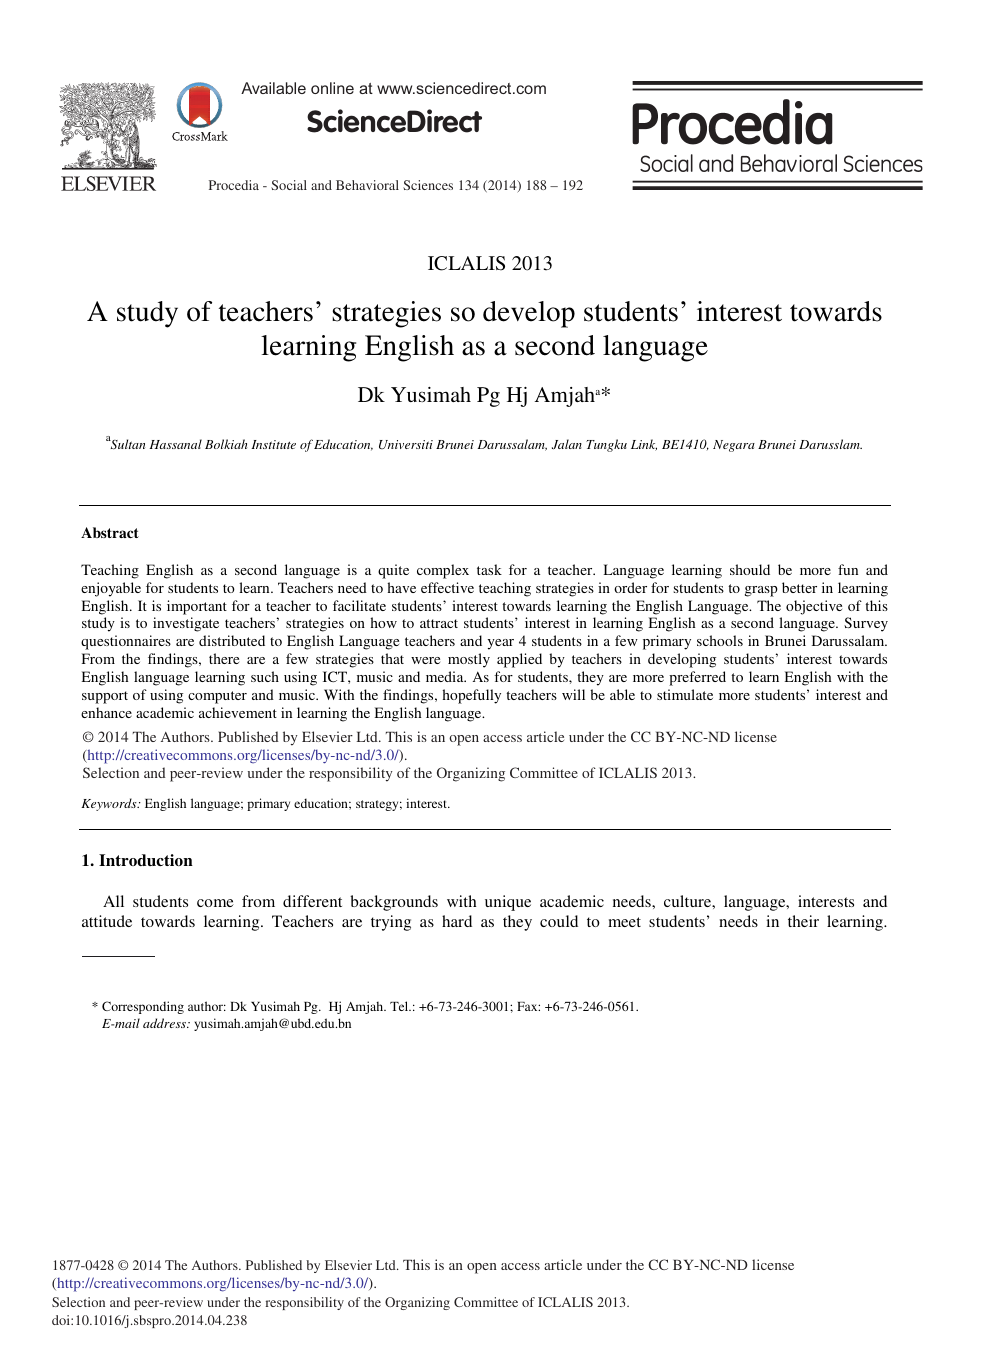 Pay for english as second language article review free argumentative essays on college athletics and